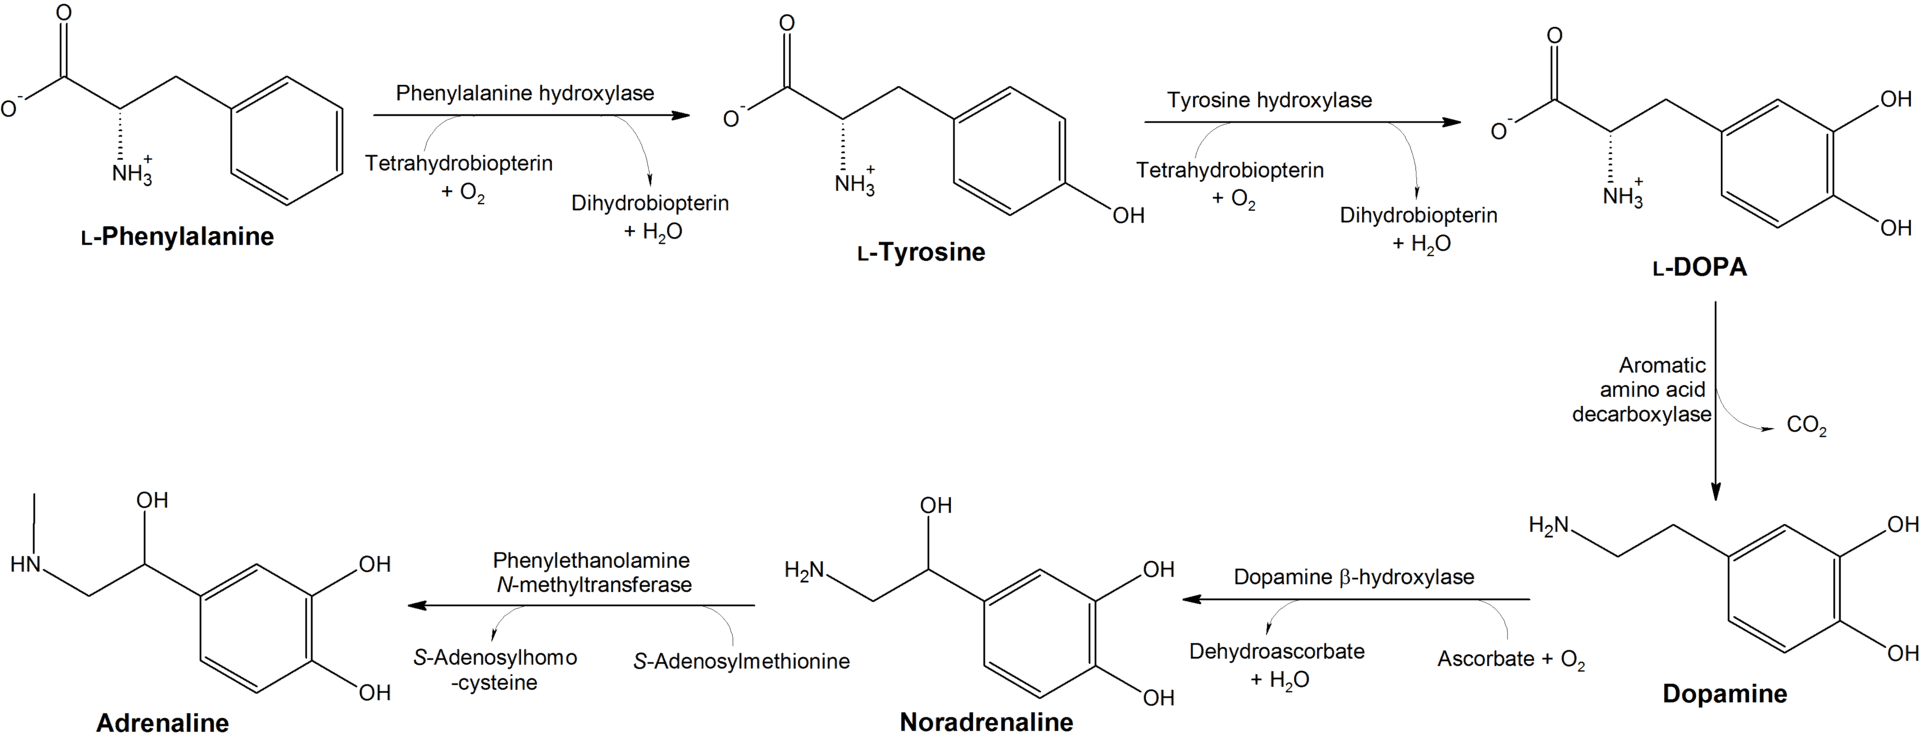 The chemical steps required for tyrosine to be converted into dopamine in the body